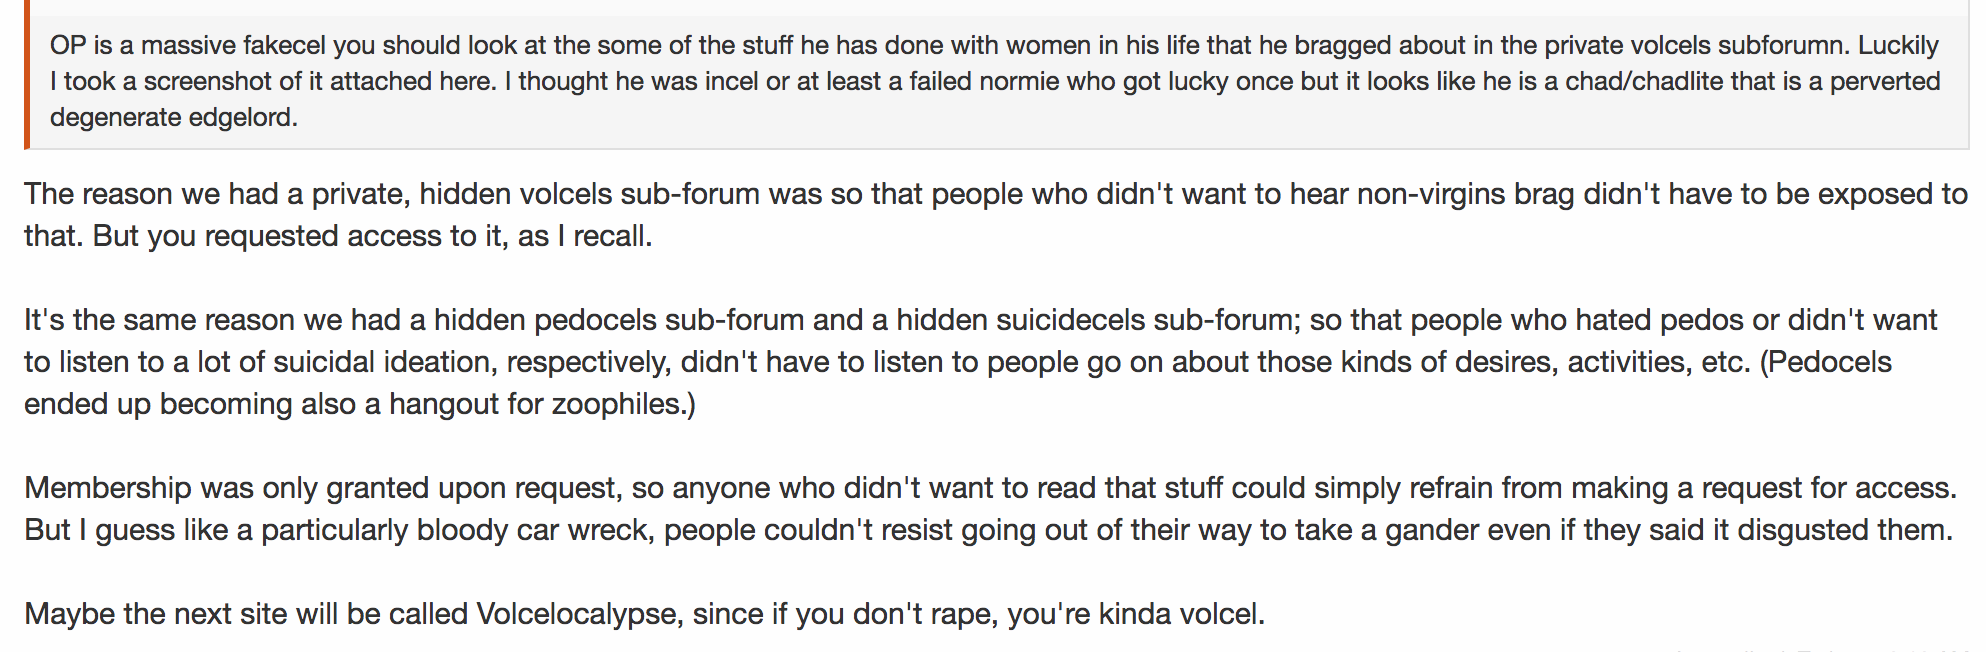 """Incelocalypse creator clarifying that the """"pedocels"""" subforum was hidden for the convenience of those who """"hated pedos""""."""